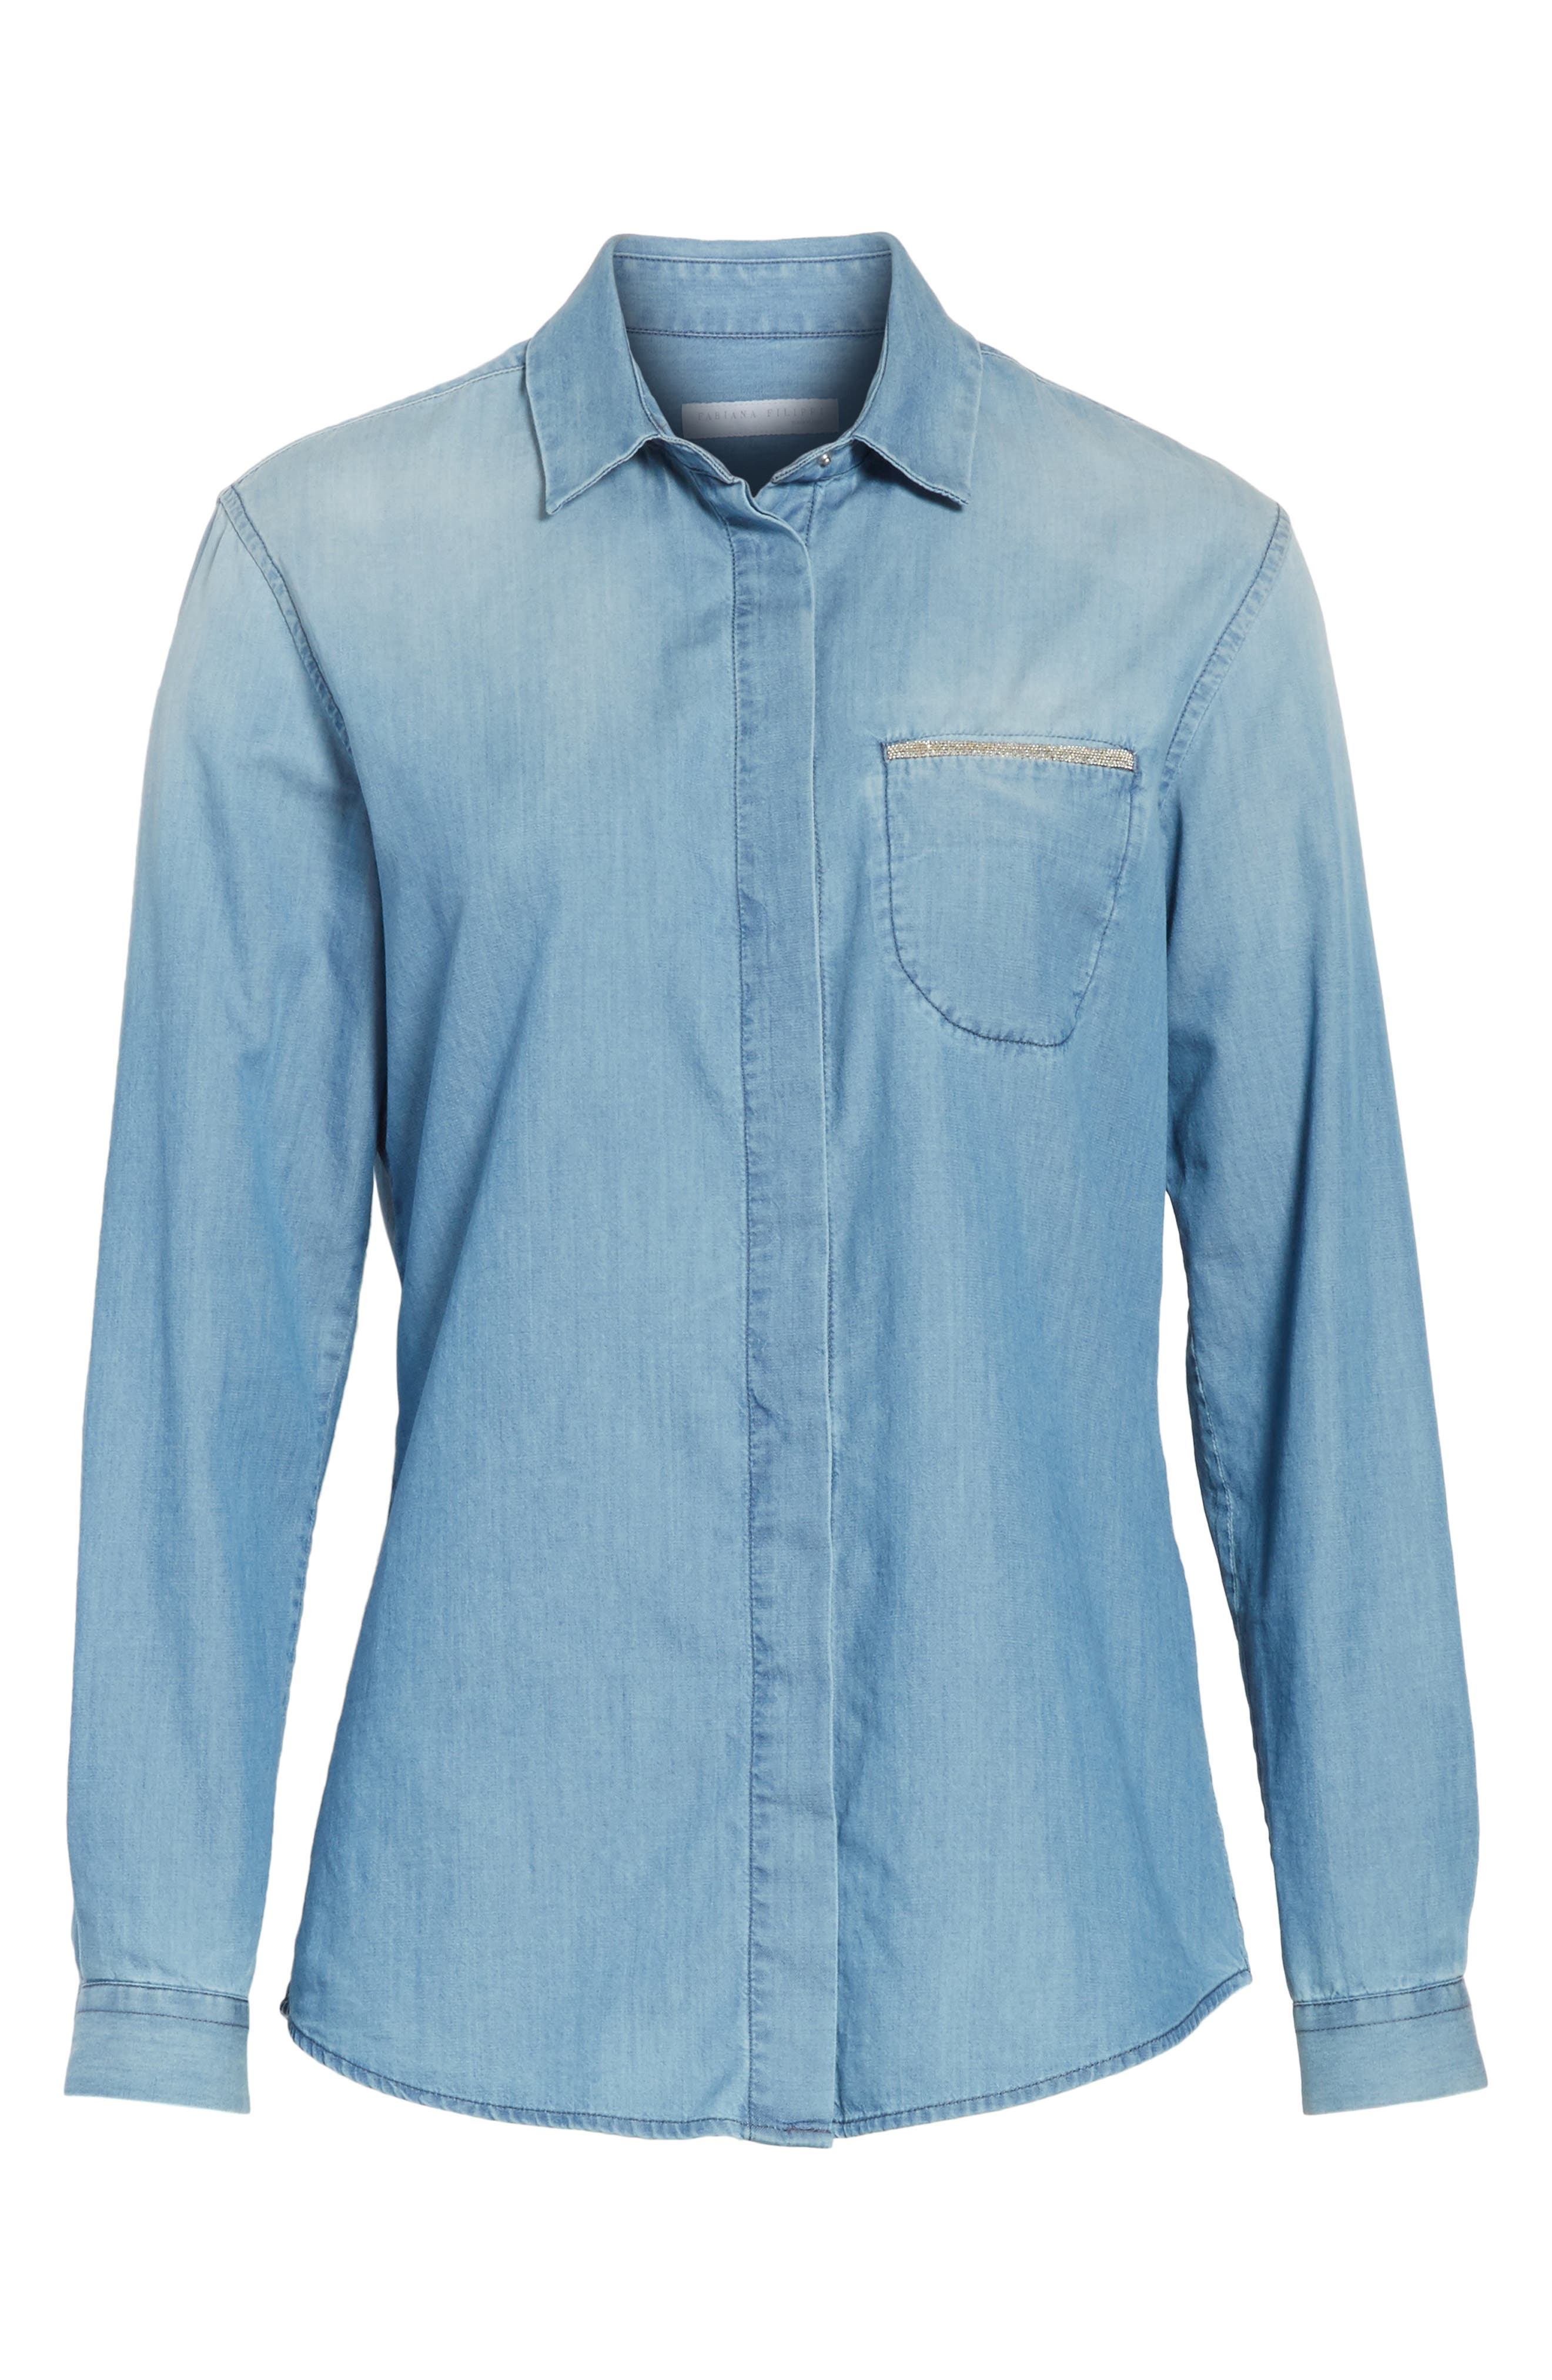 Cotton & Cashmere Chambray Blouse,                             Alternate thumbnail 7, color,                             Denim Blue